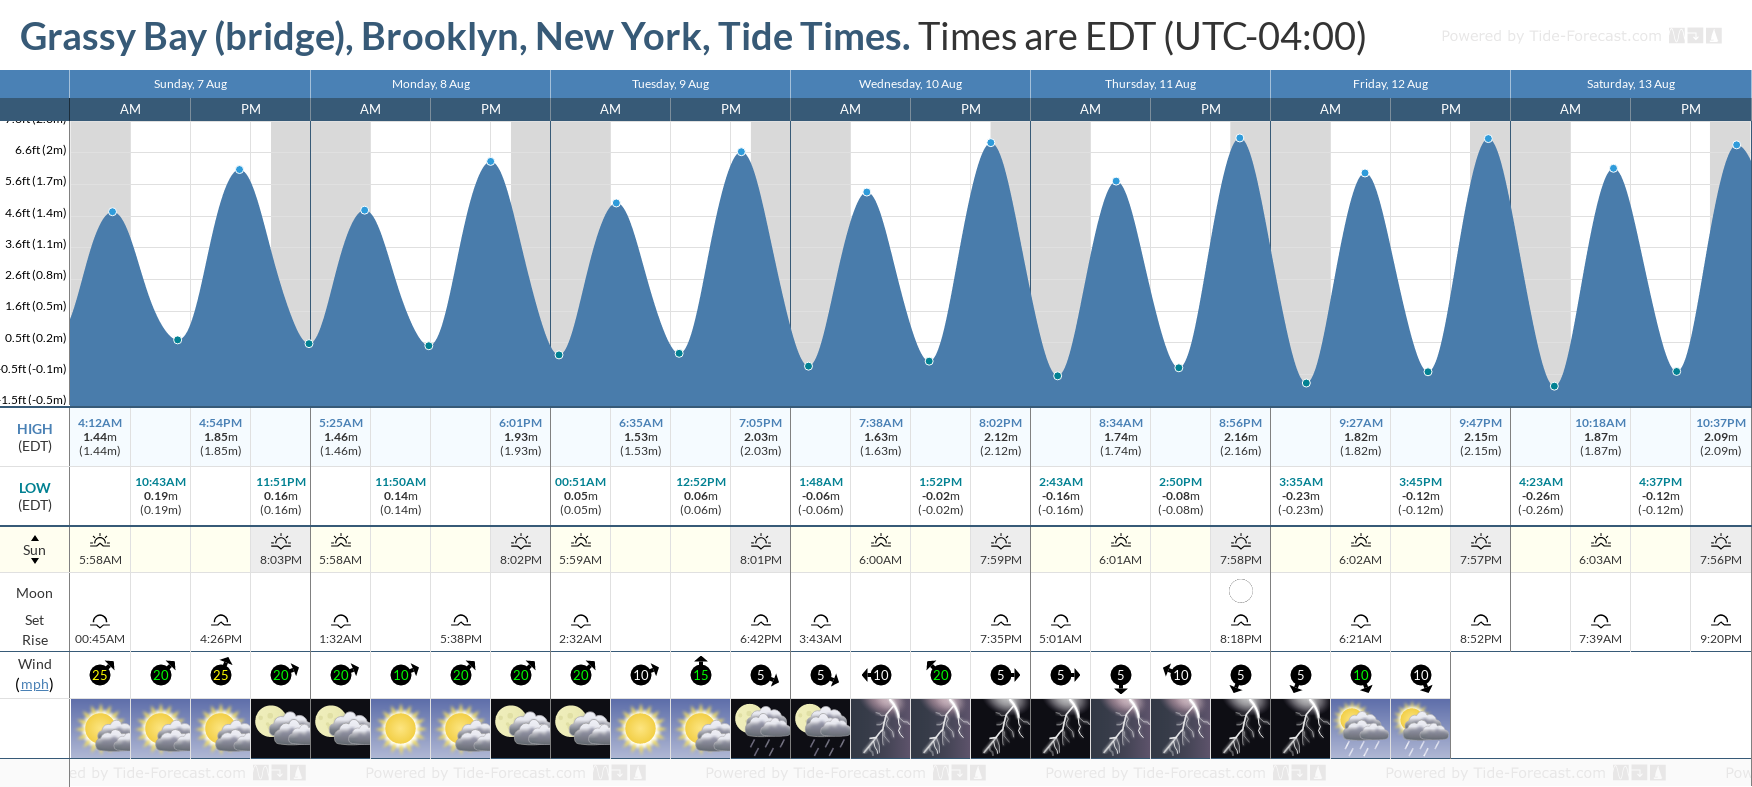 Grassy Bay (bridge), Brooklyn, New York Tide Chart including high and low tide tide times for the next 7 days